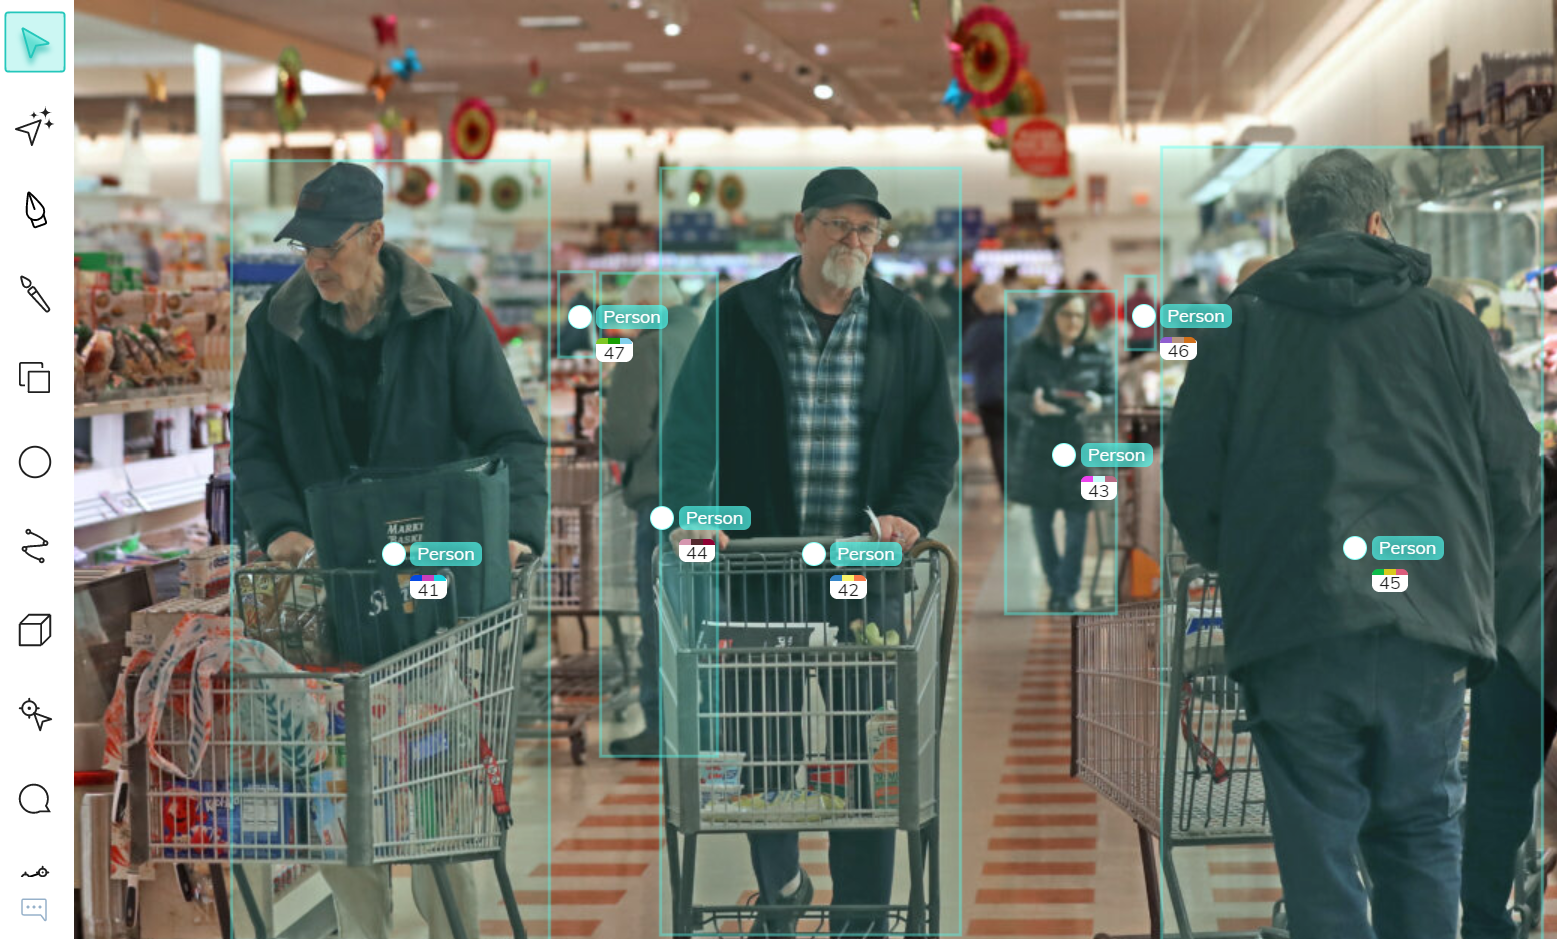 Bounding box annotations of customers in a supermarket for foot traffic and people counting using computer vision